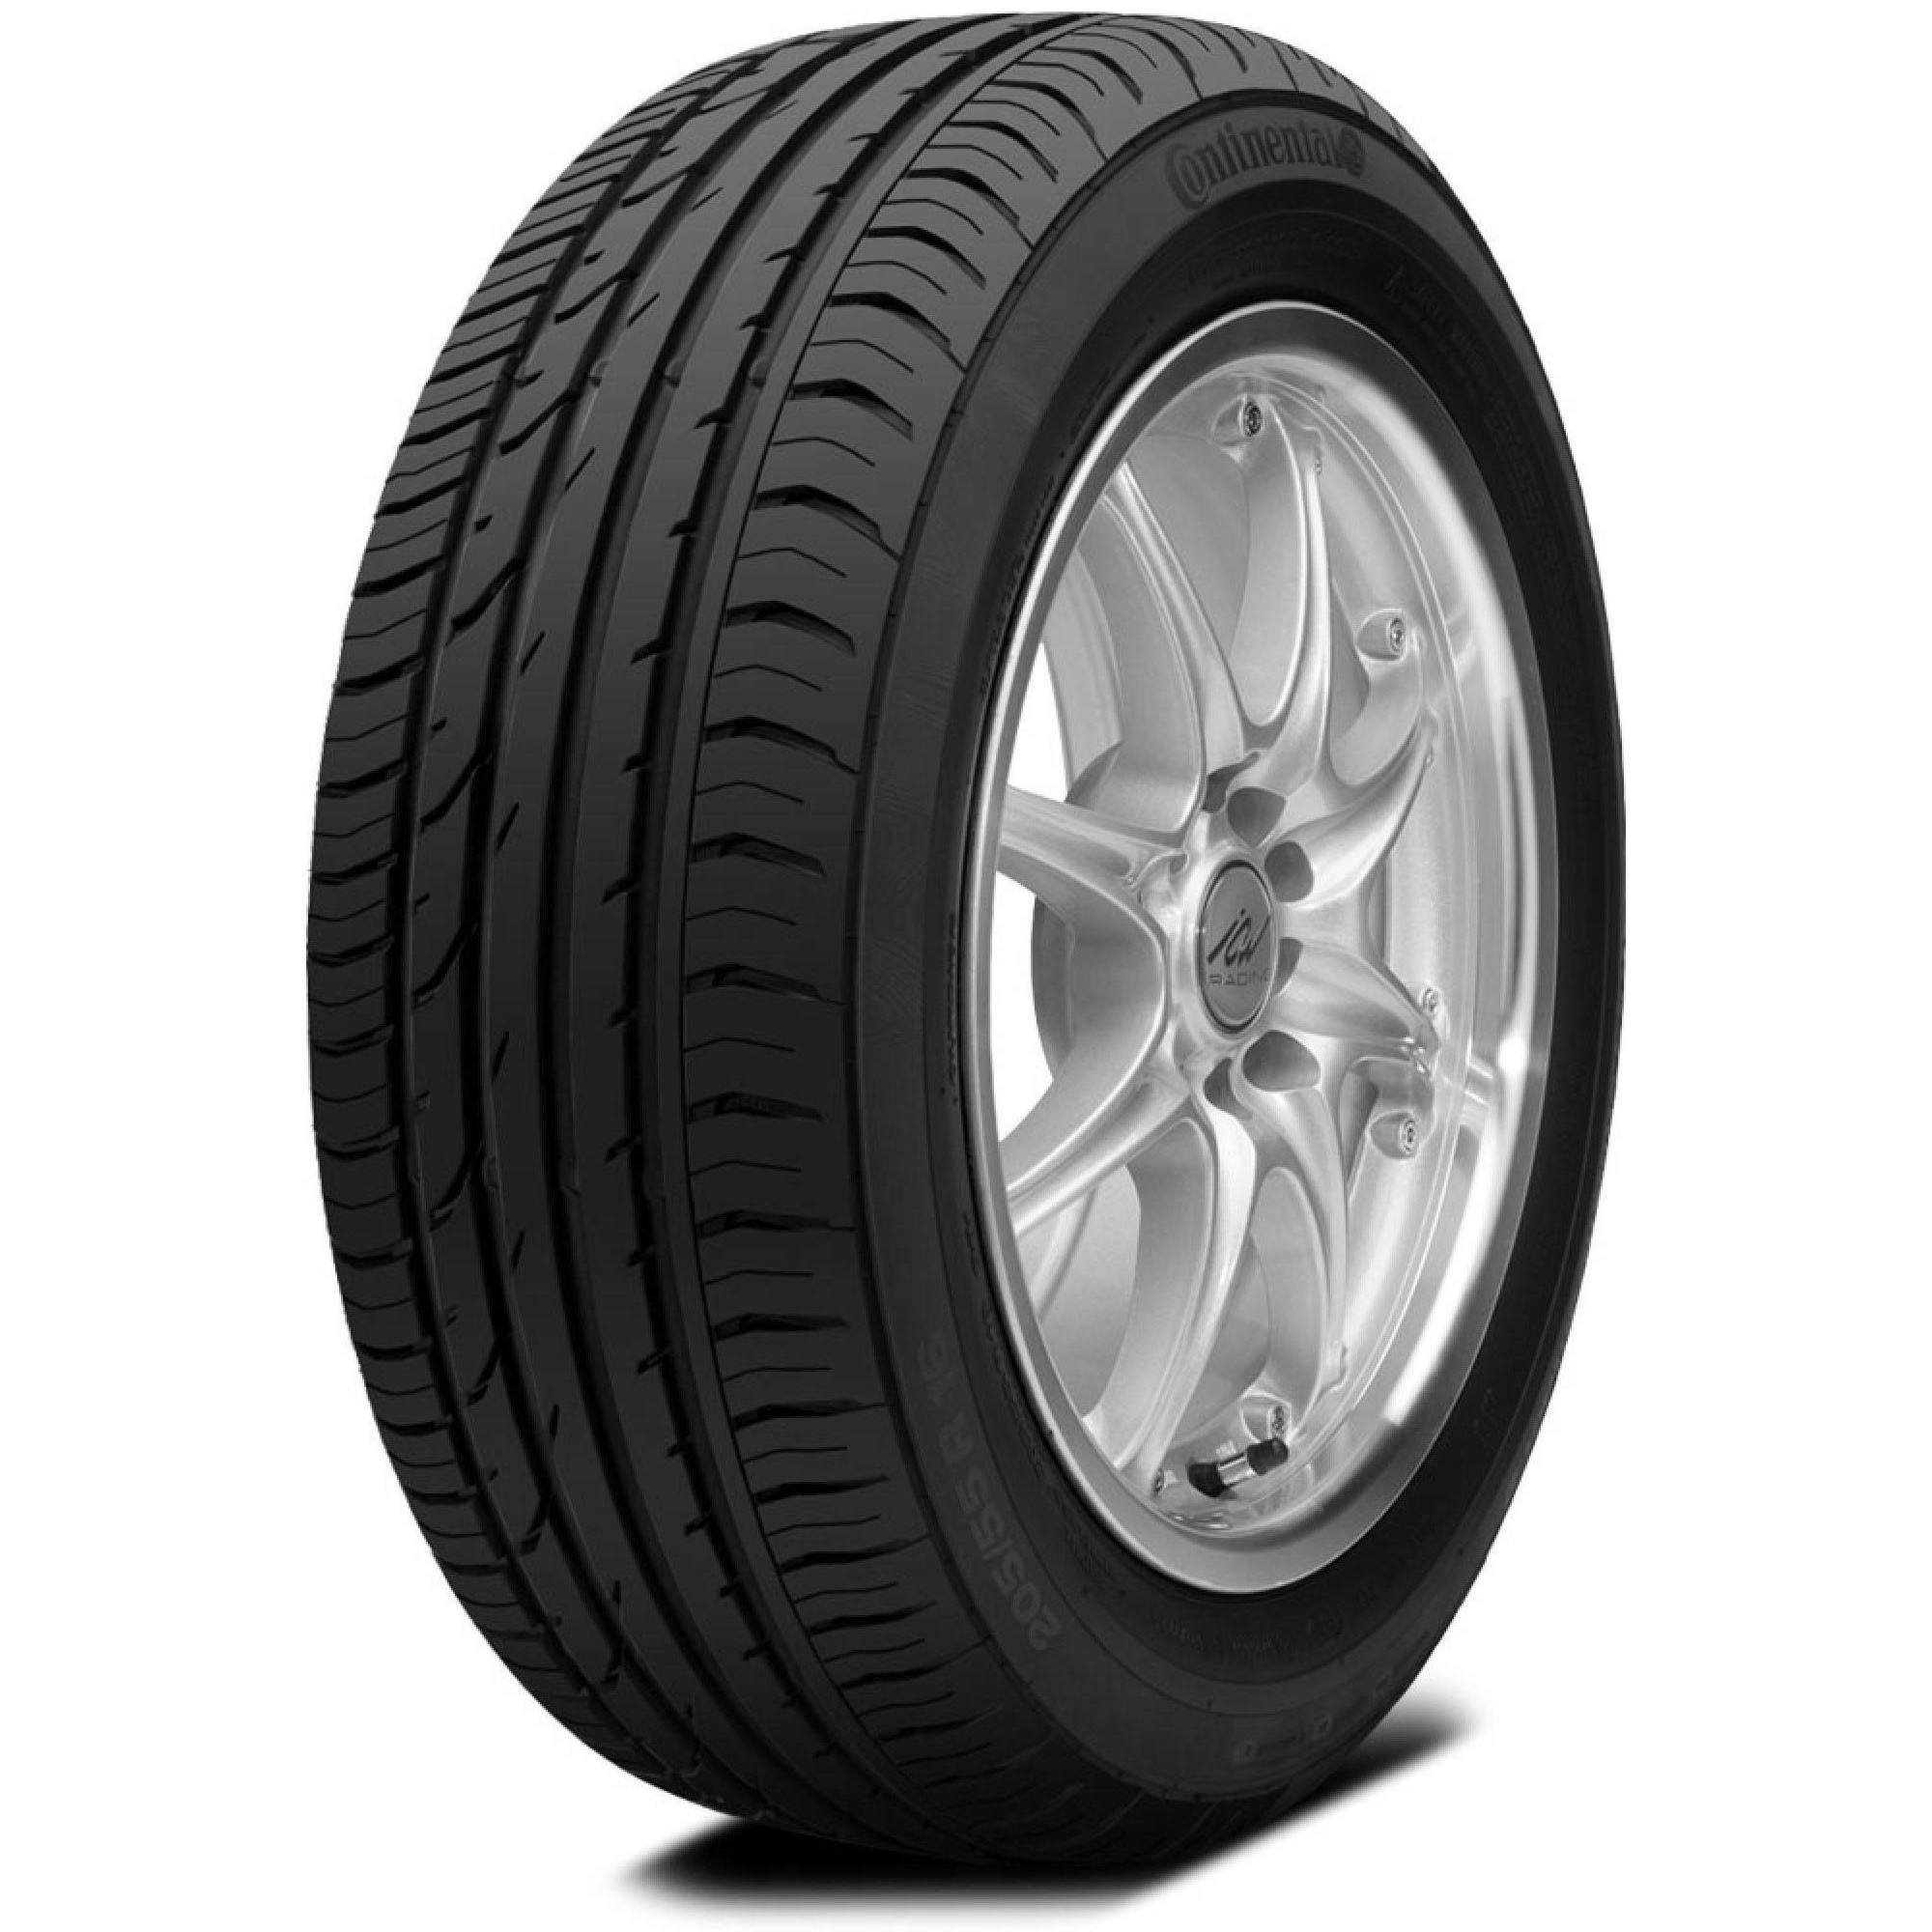 Continental CONTI PREMIUM CONTACT MC5 205/65 R 15 Tubeless 94 V Car Tyre